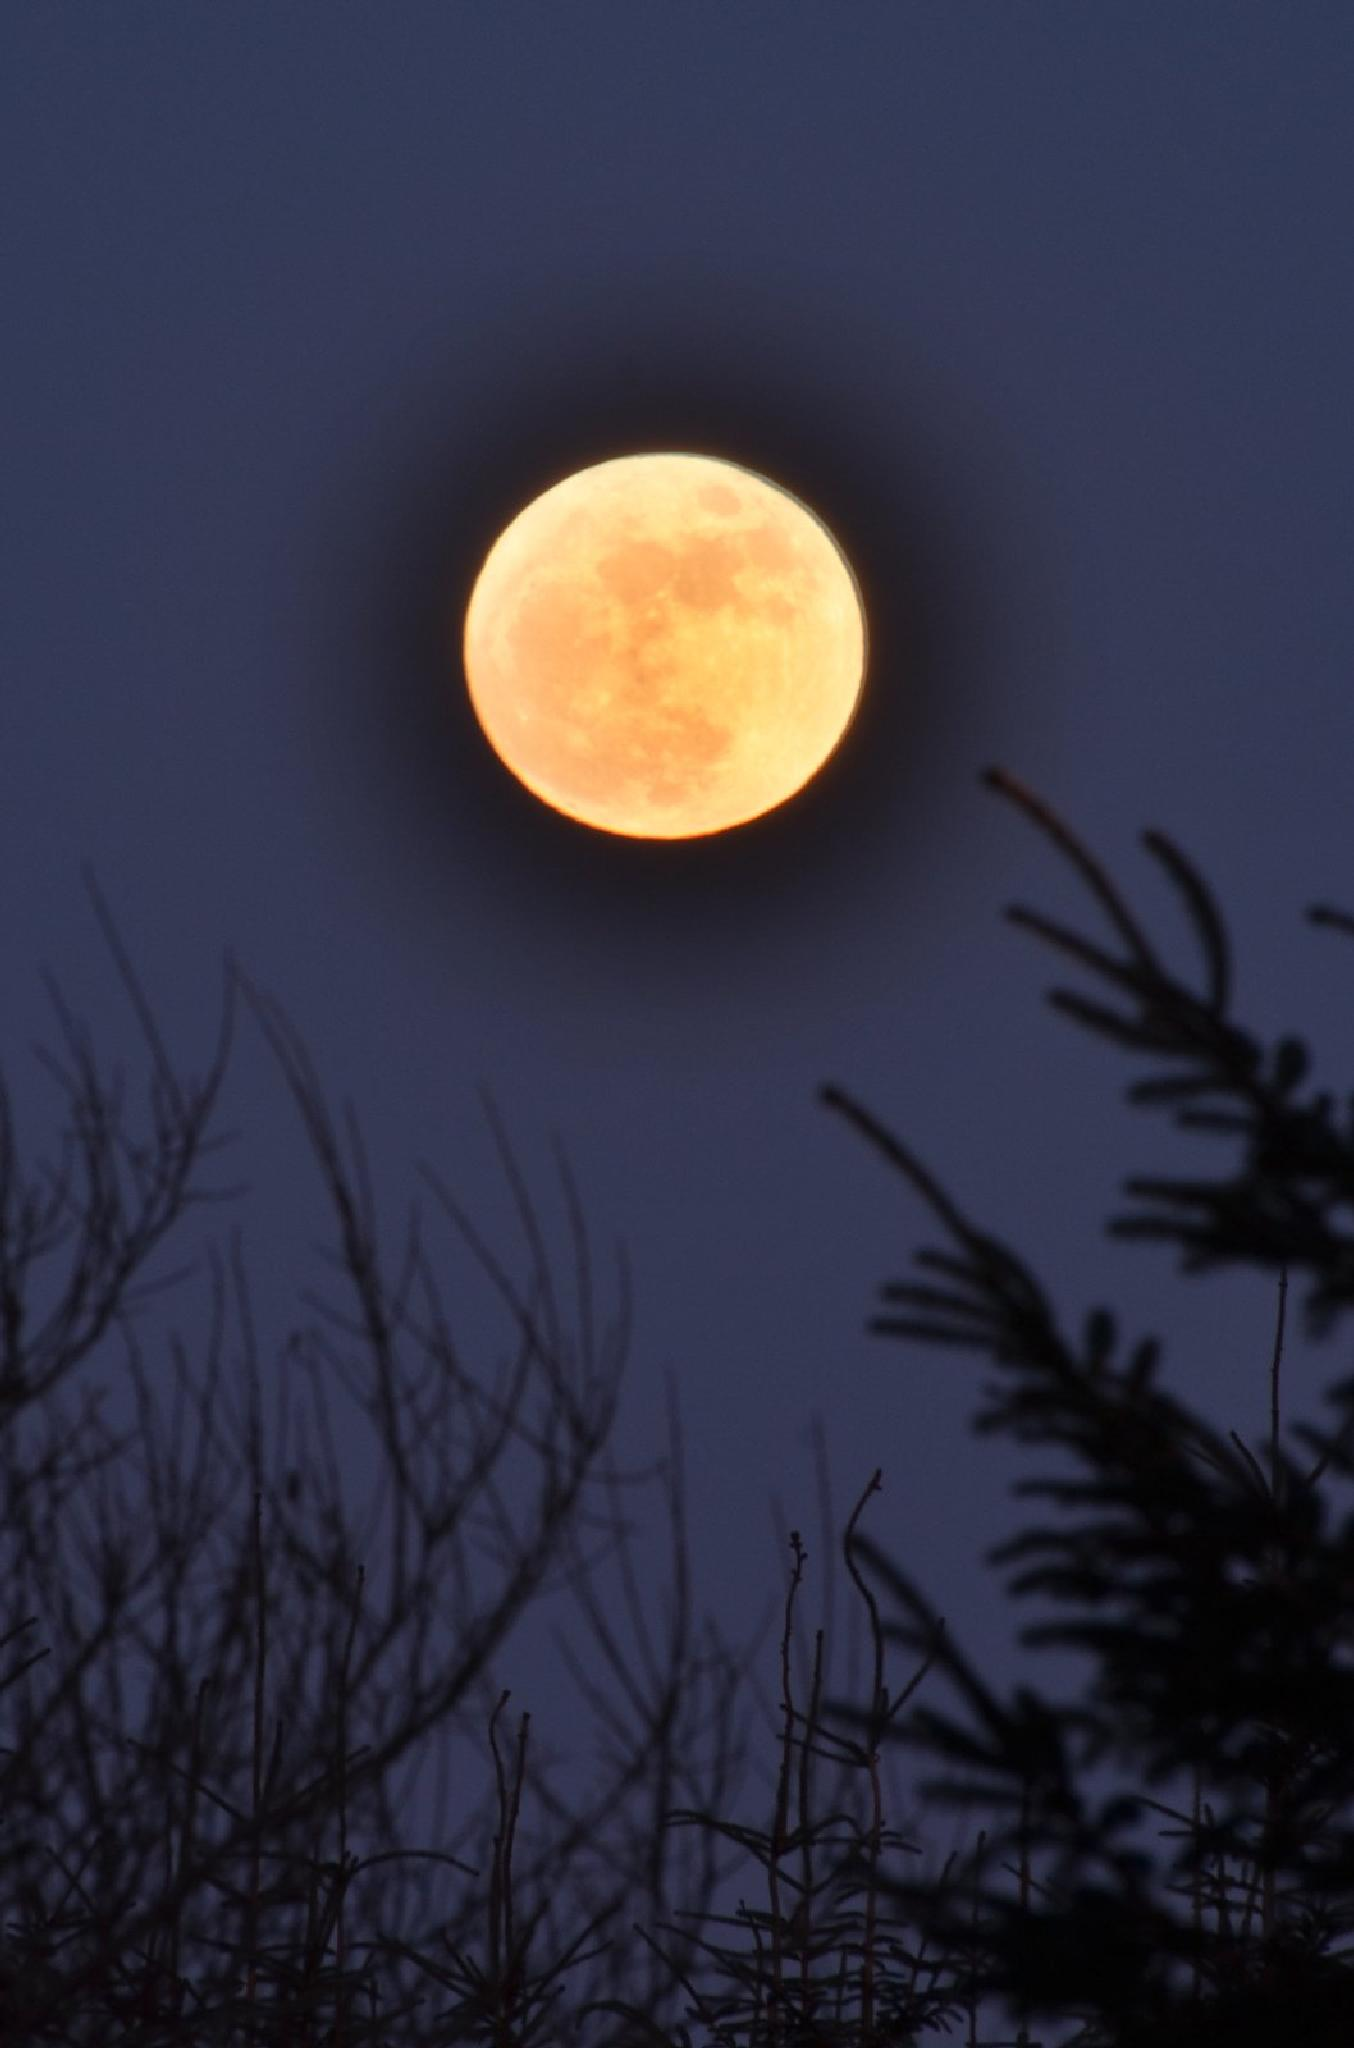 There's a big yellow moon over West Cork by jeffdixon